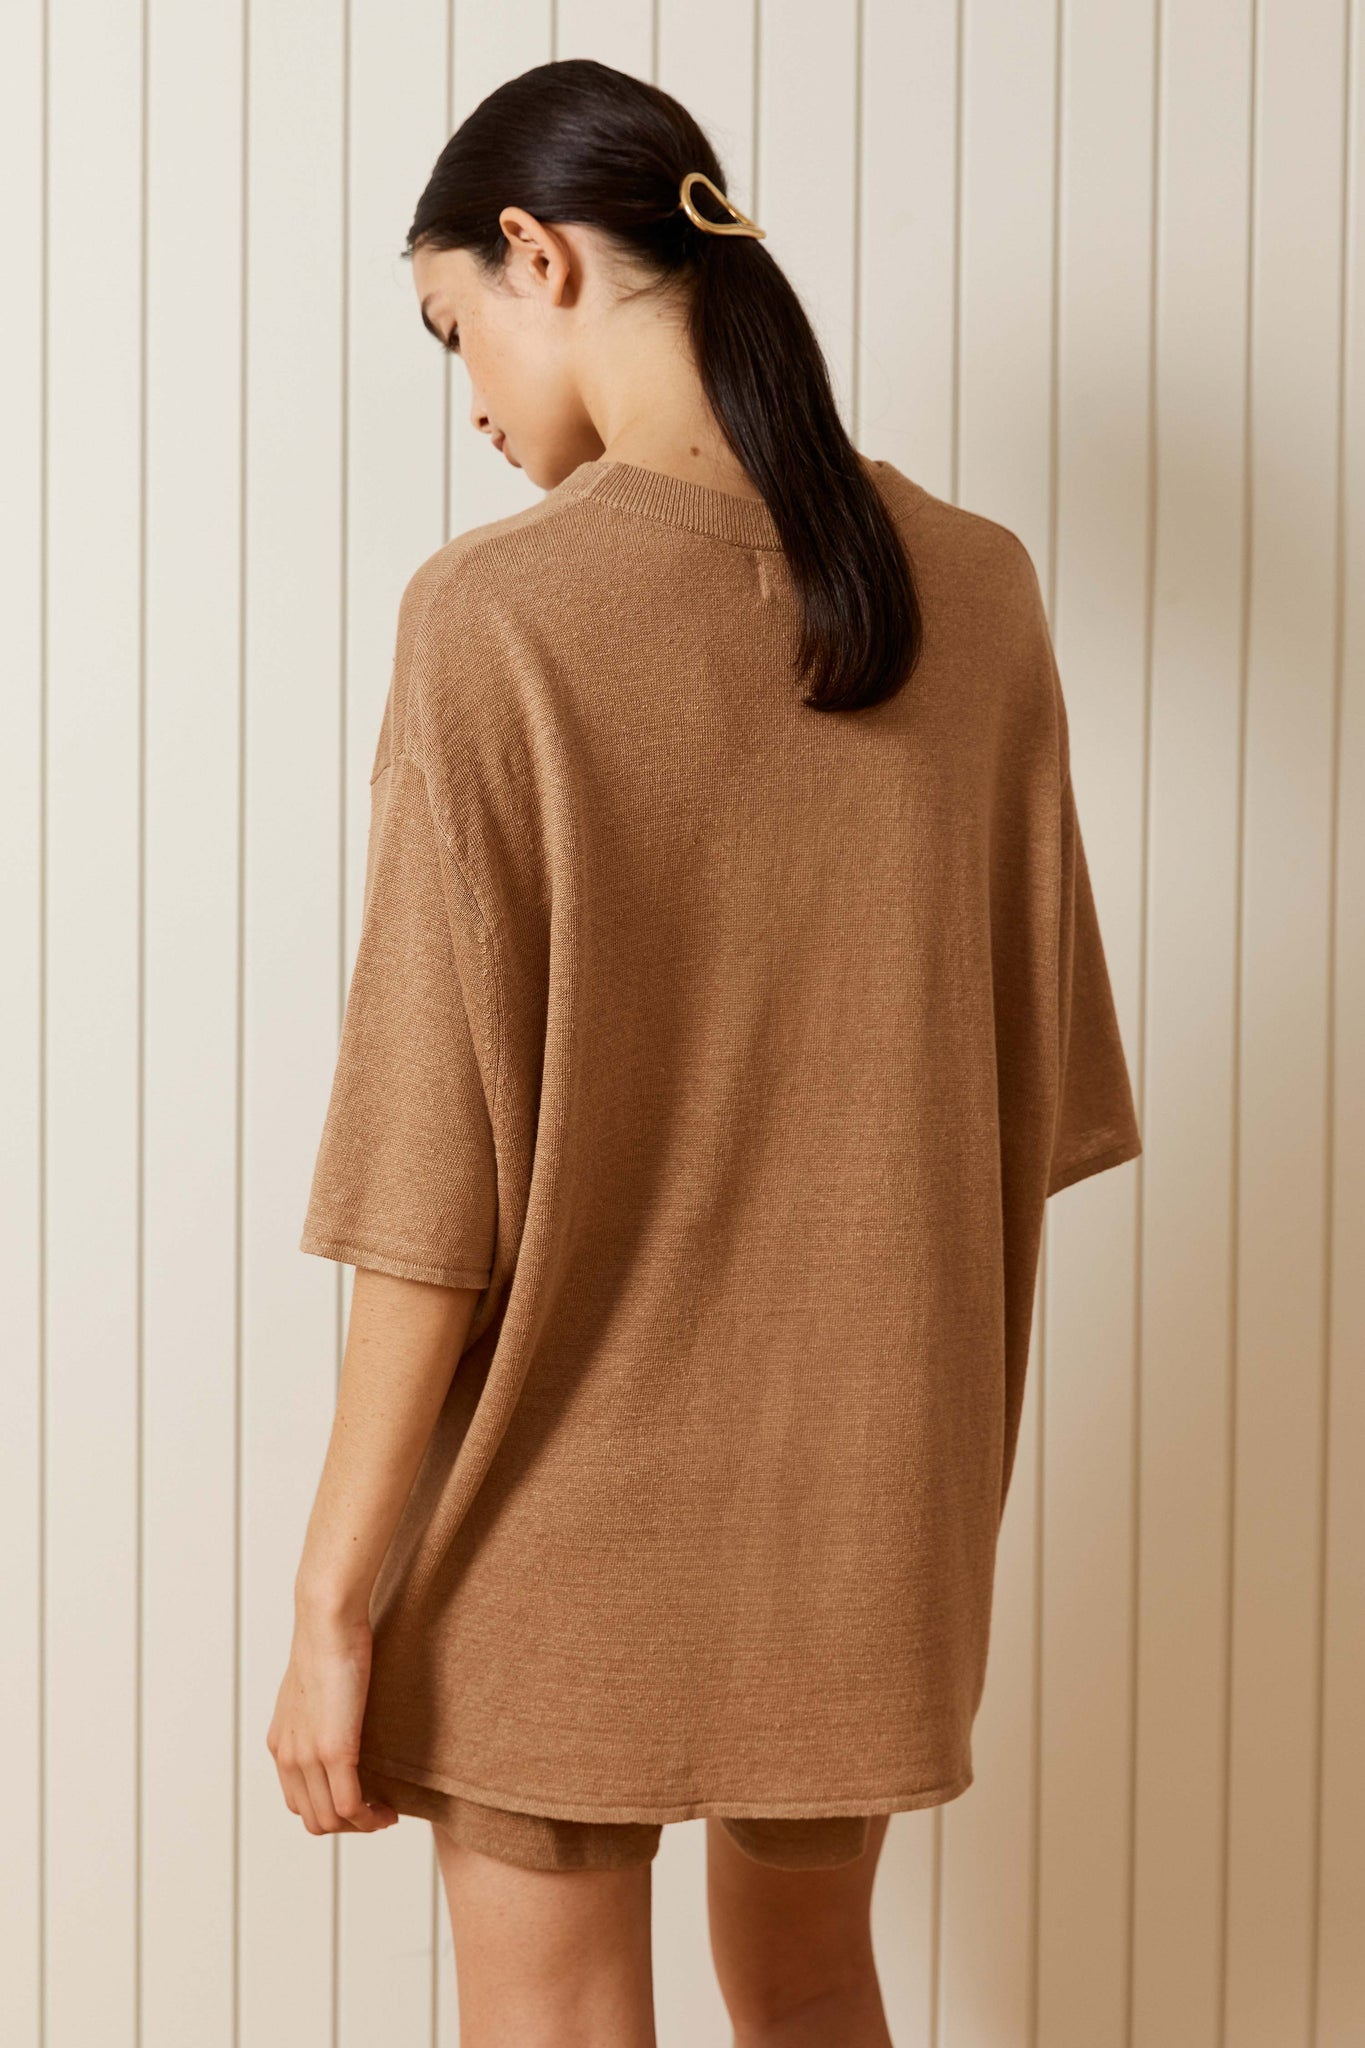 copain tee in almond.